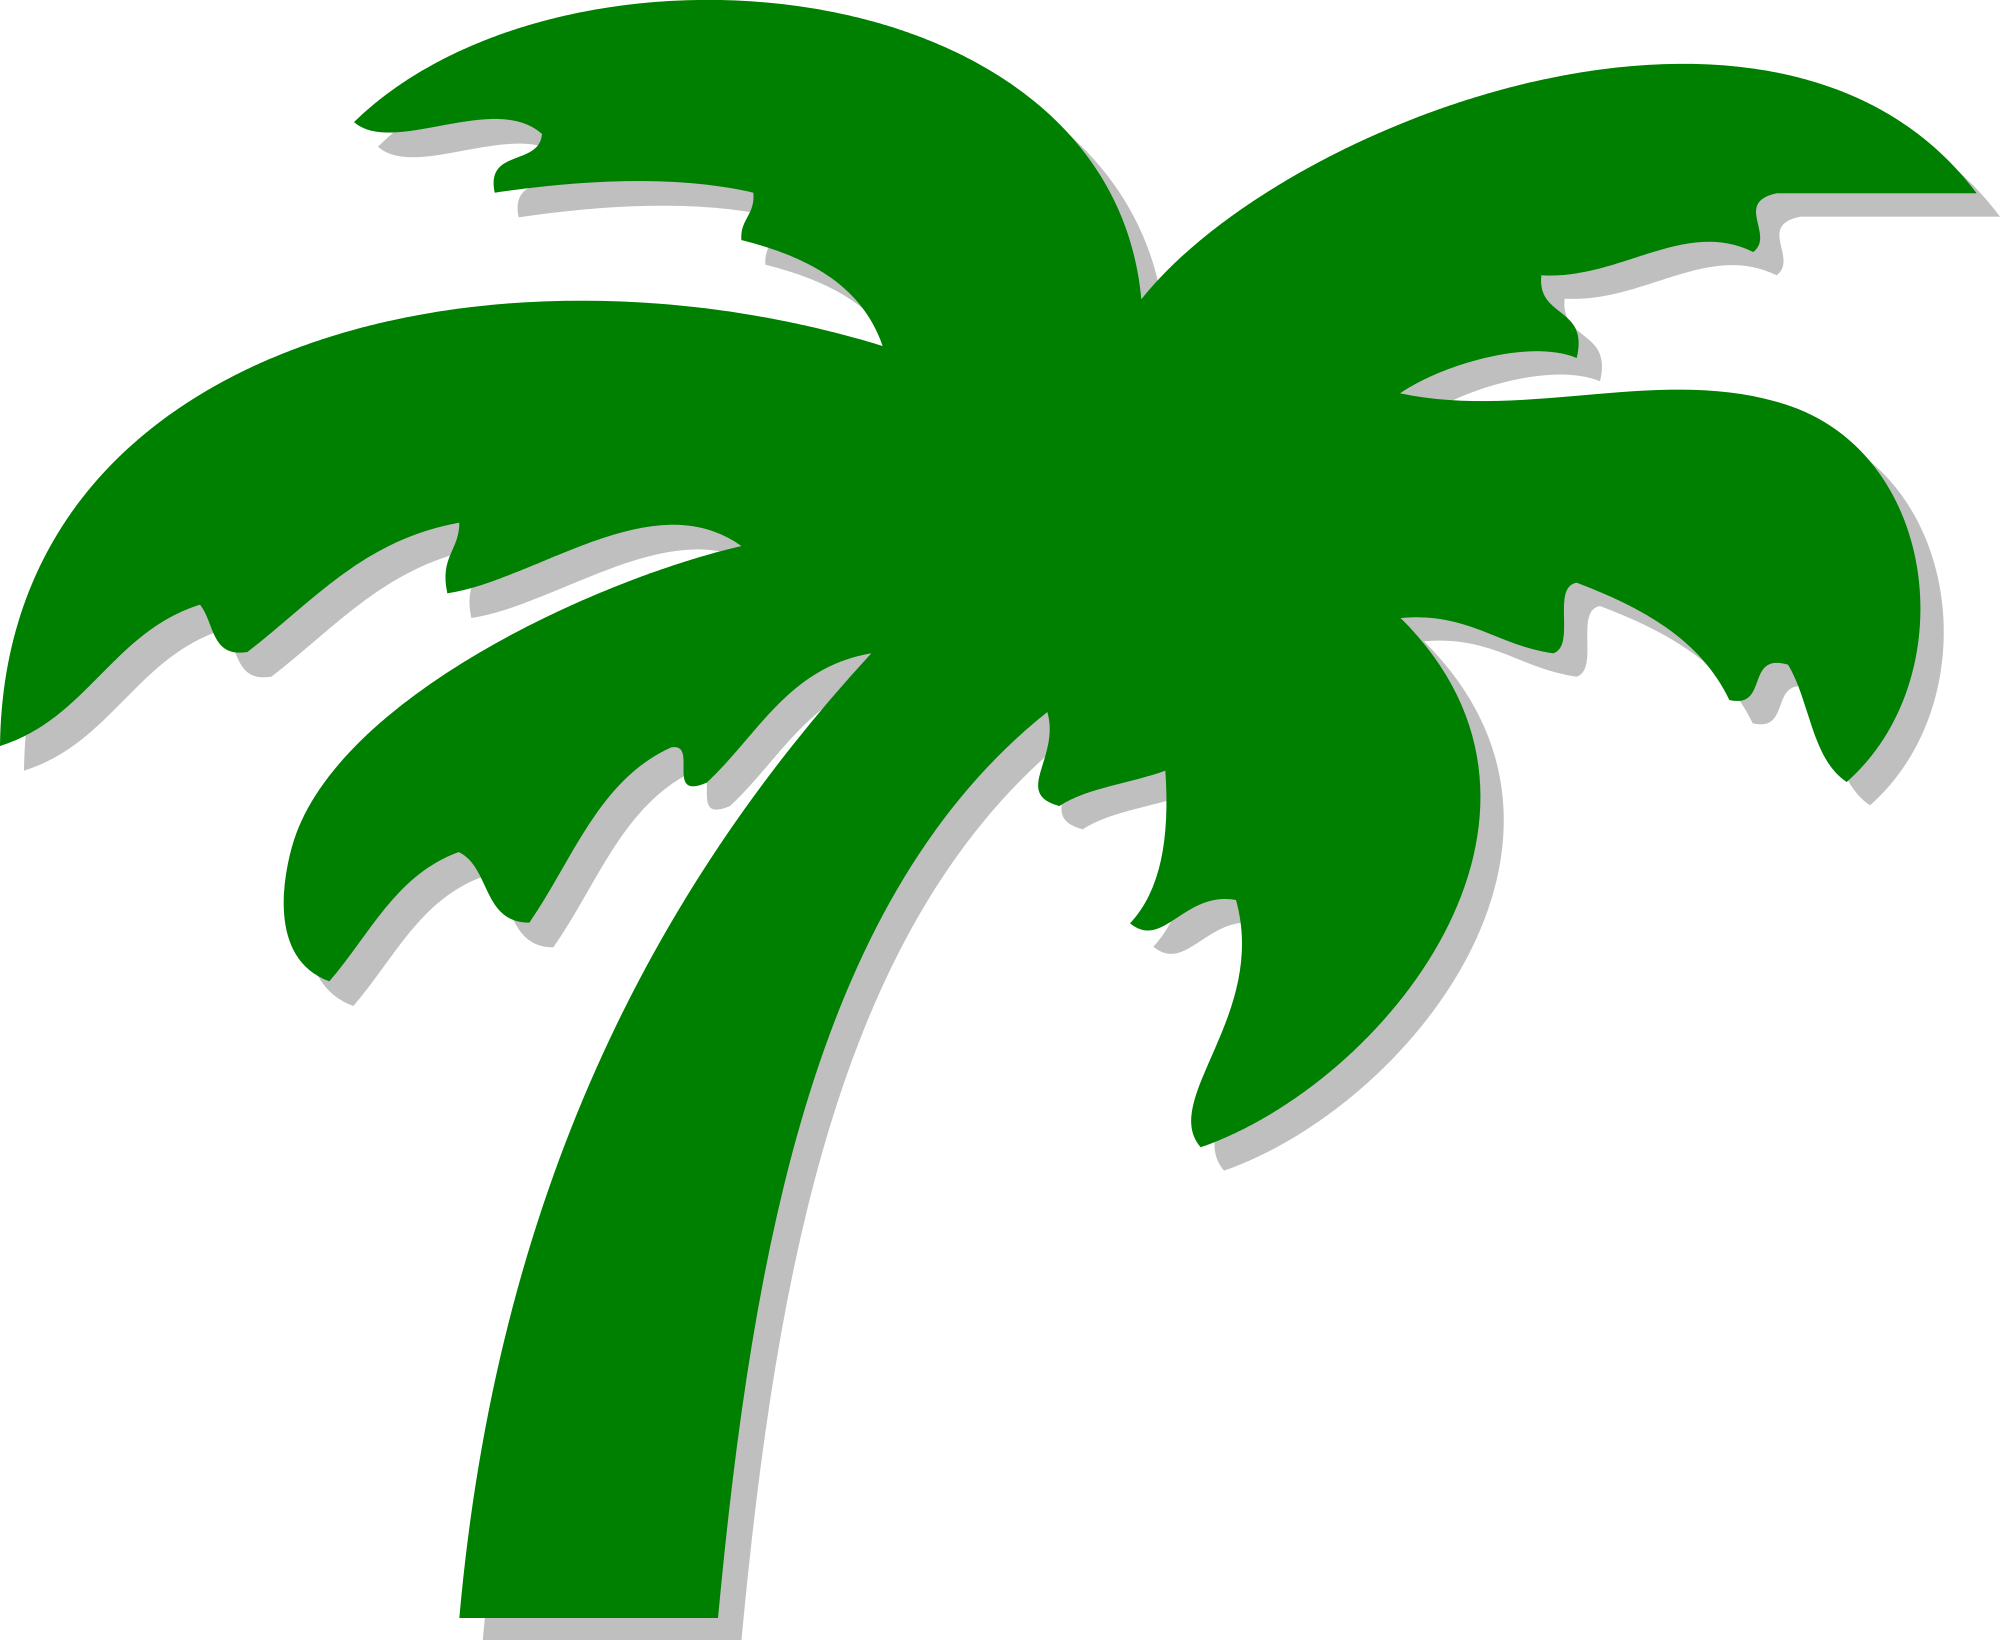 Palm Tree svg #5, Download drawings